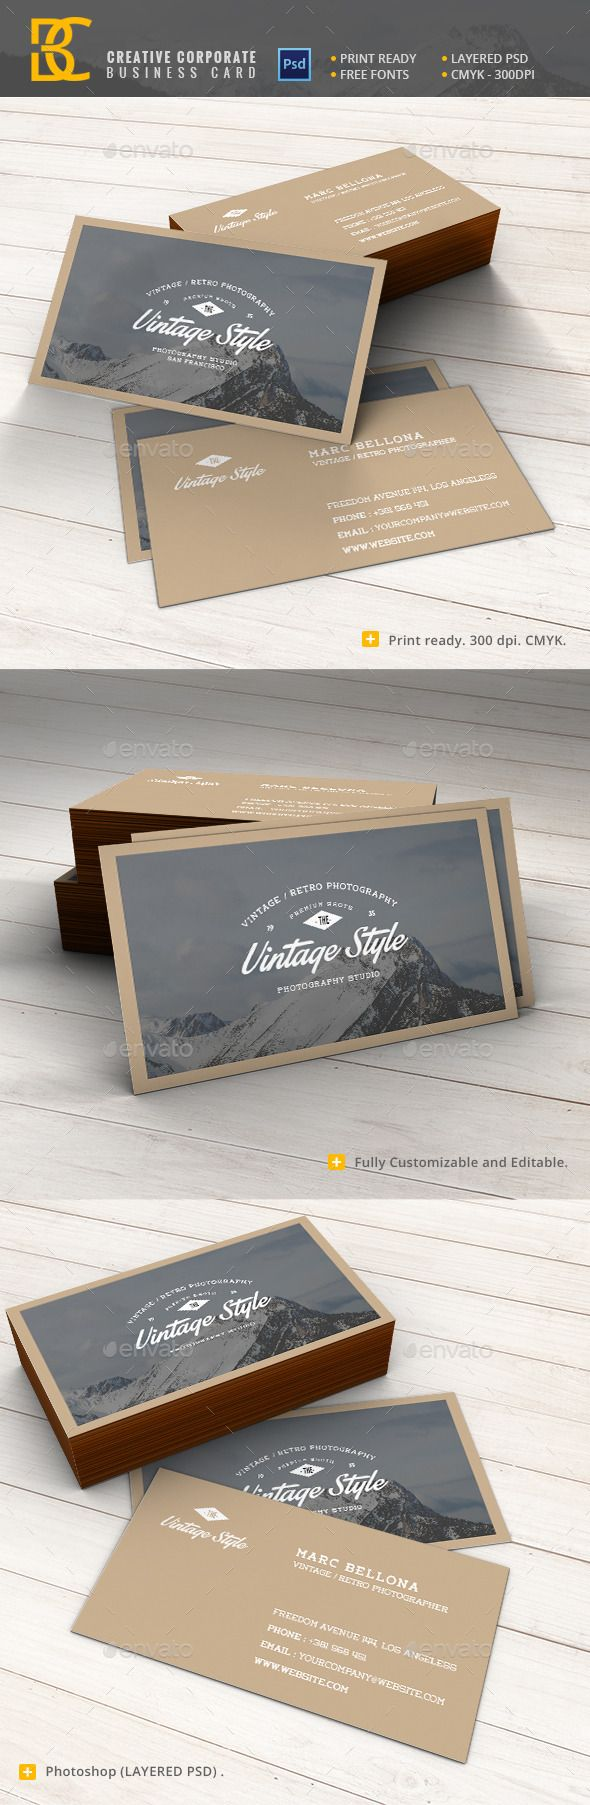 243 best Business Card Inspiration images on Pinterest | Fonts ...